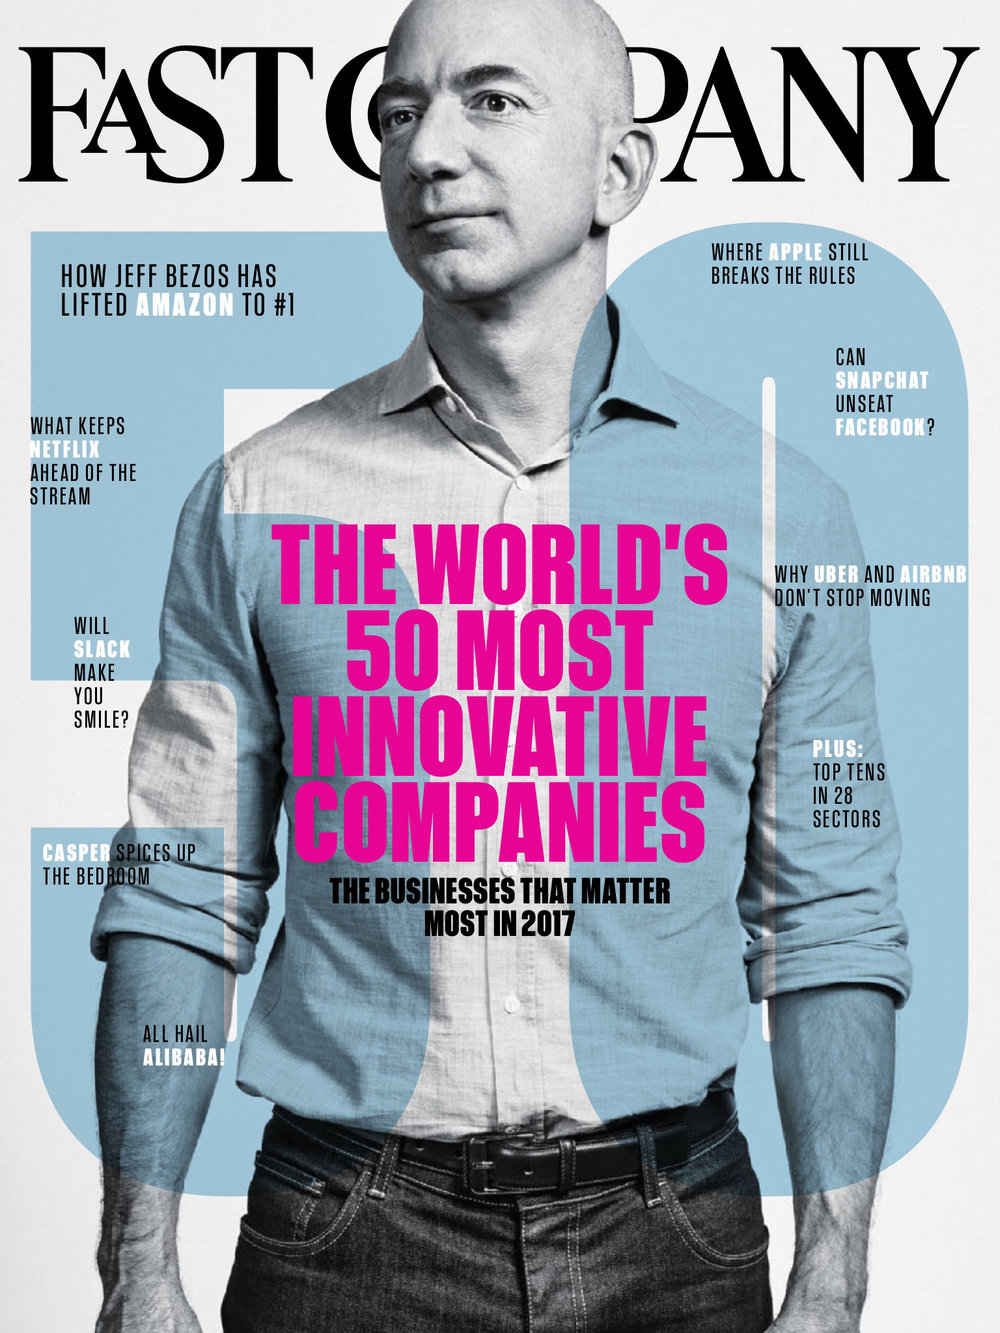 Fast Company 2017 Innovation Cover